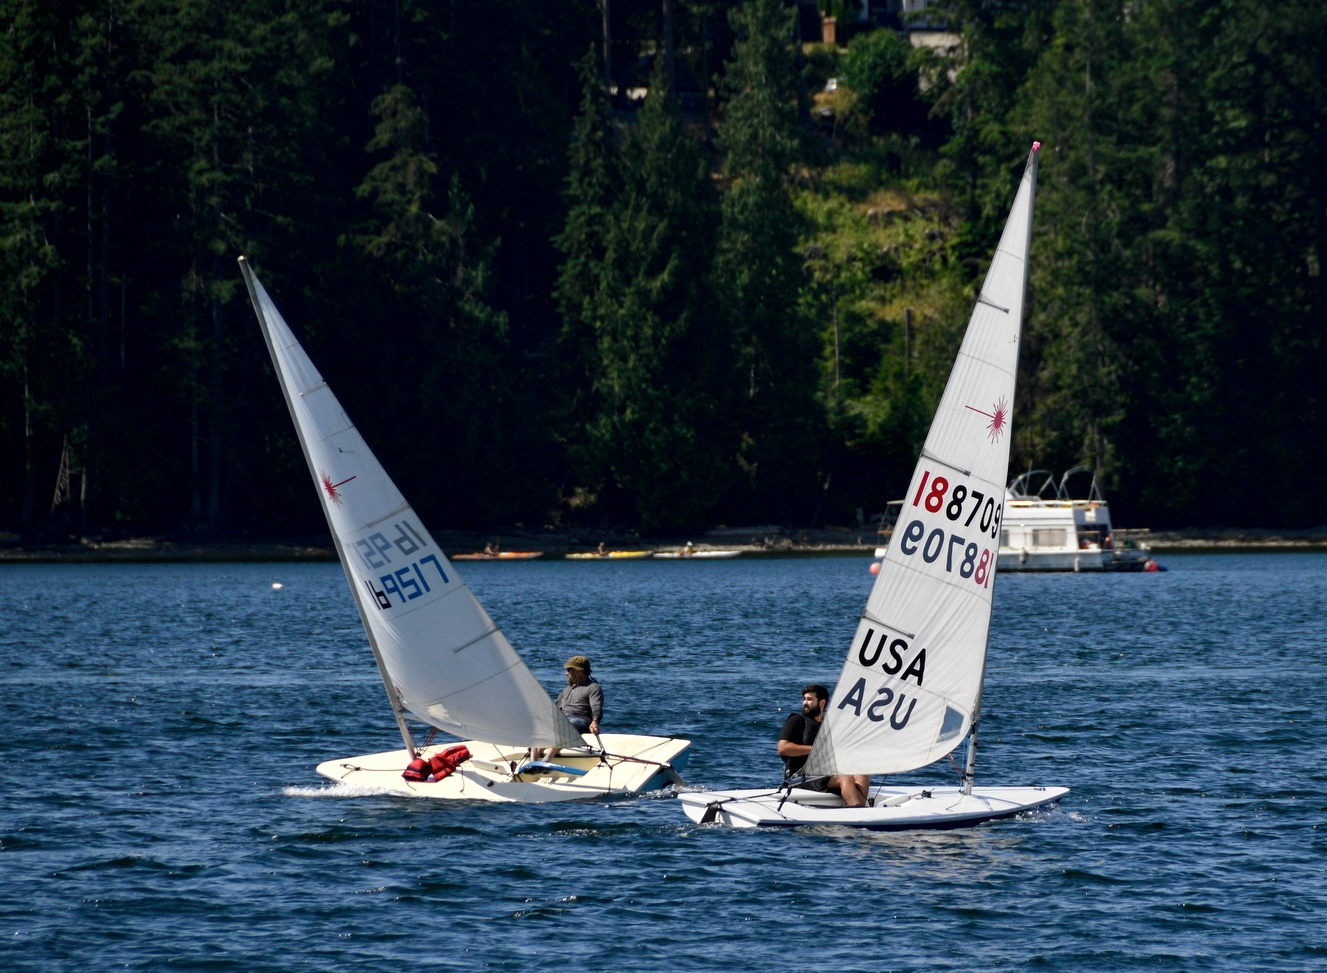 6th Annual Poise Cove Regatta July 16th, 2017